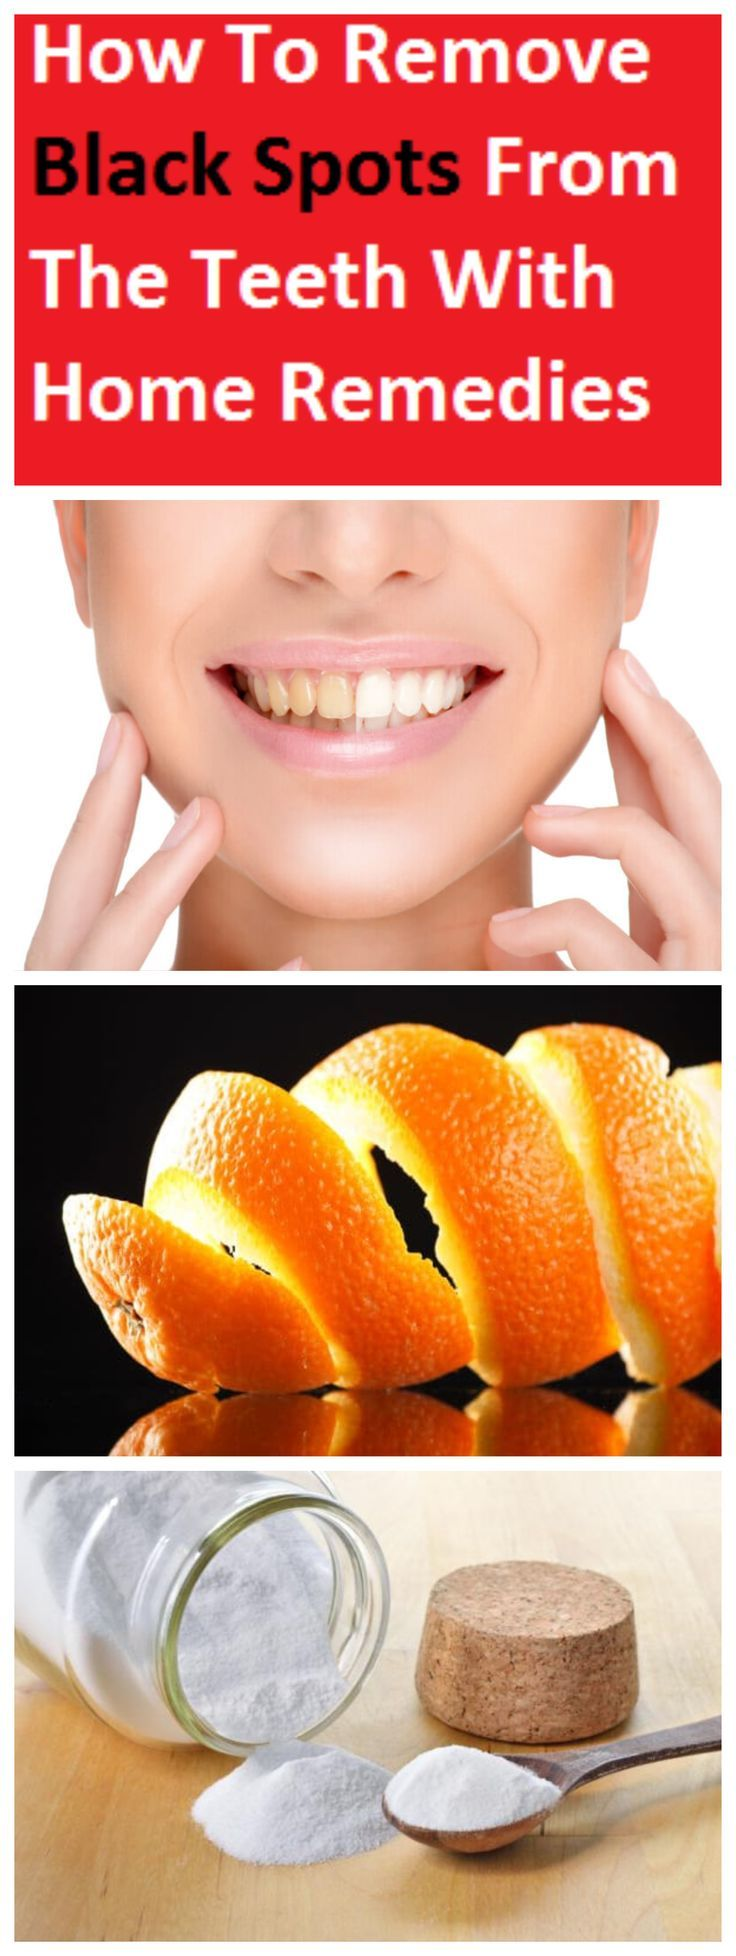 How to remove black spots from the teeth with home